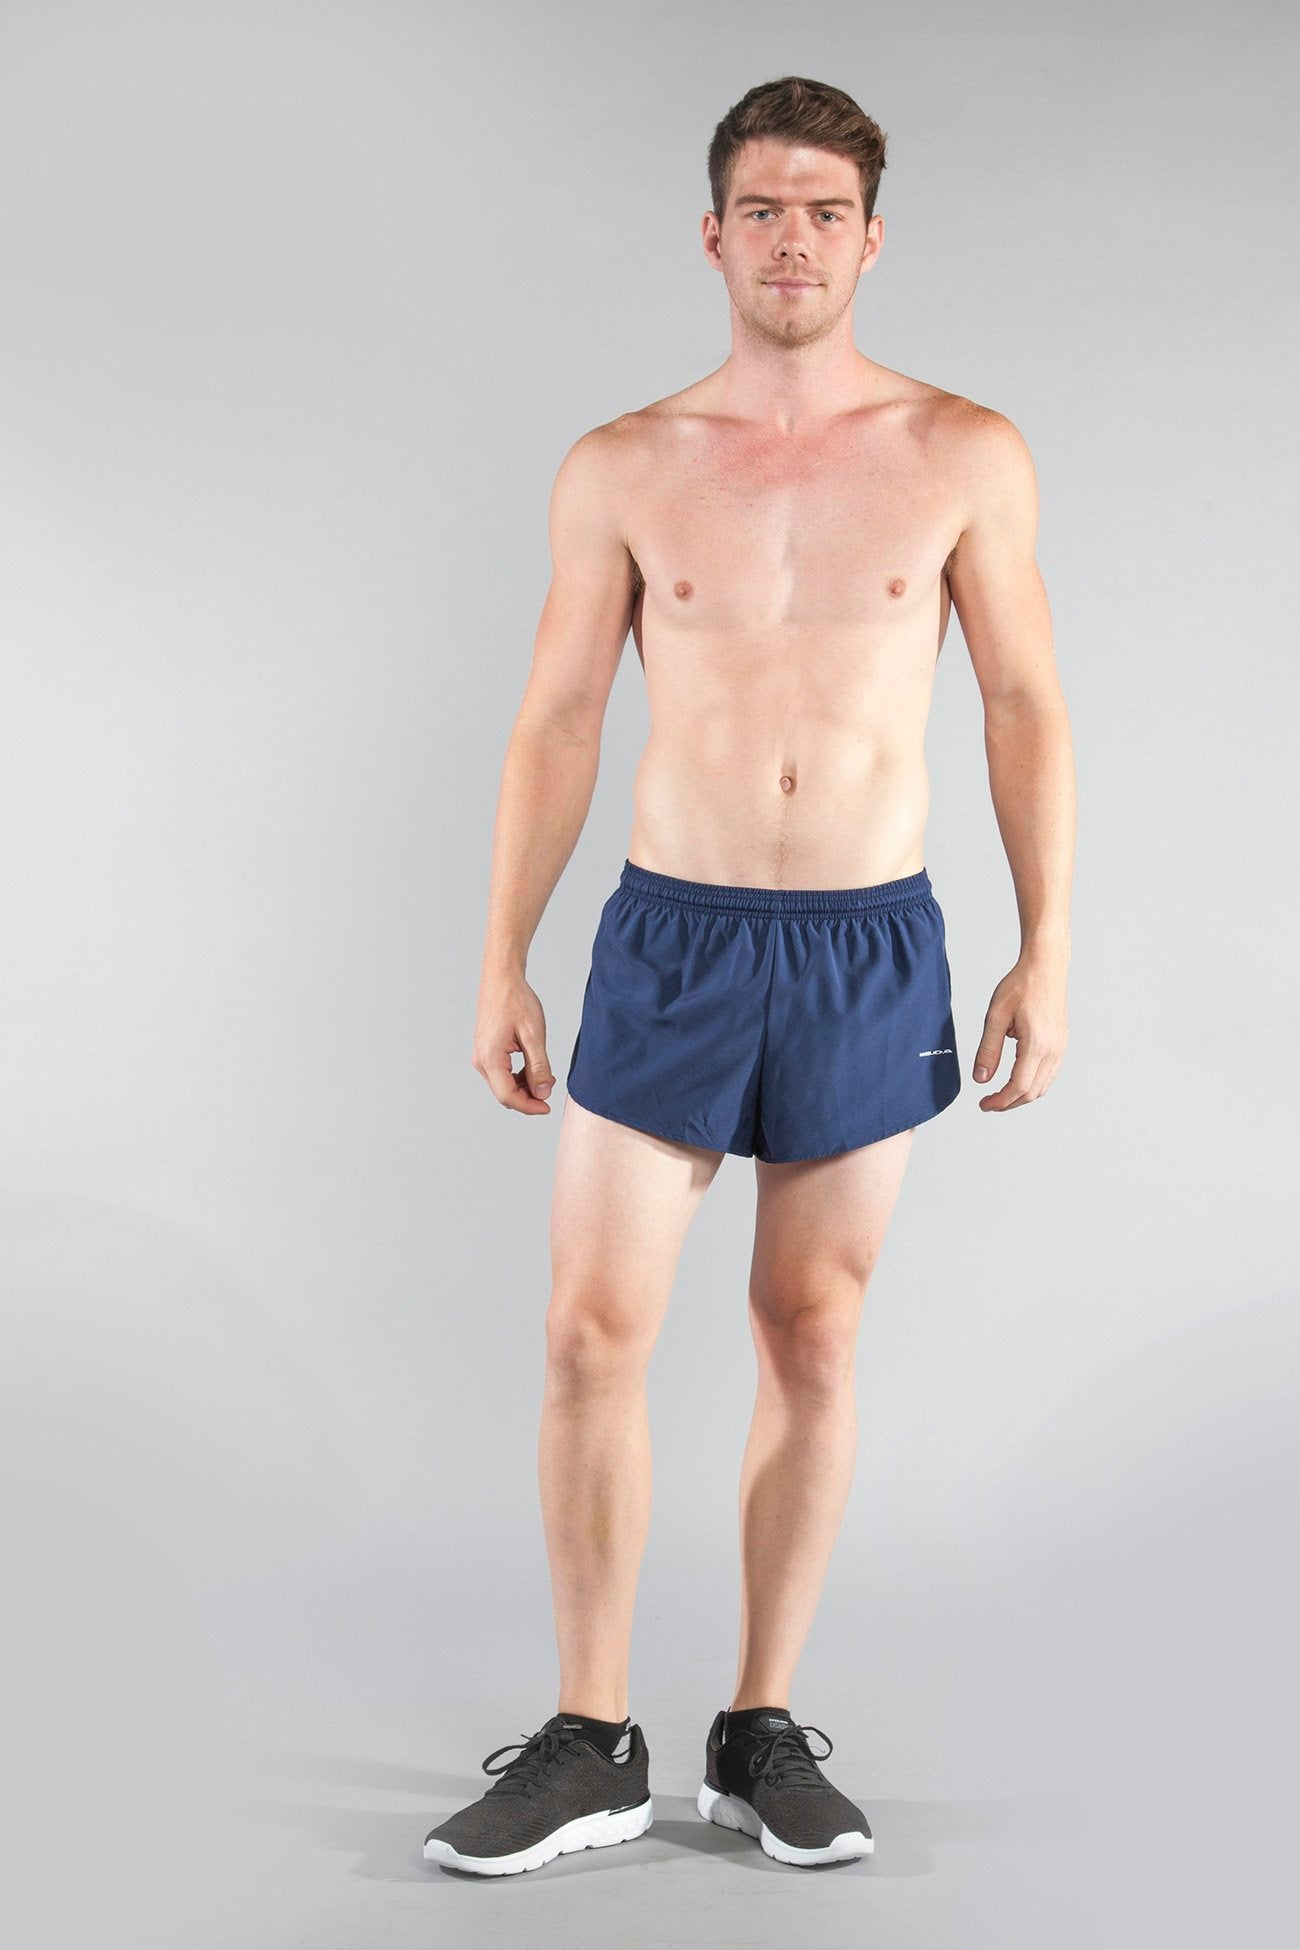 Buy low price, high quality jogging suits for short men with worldwide shipping on fatalovely.cf